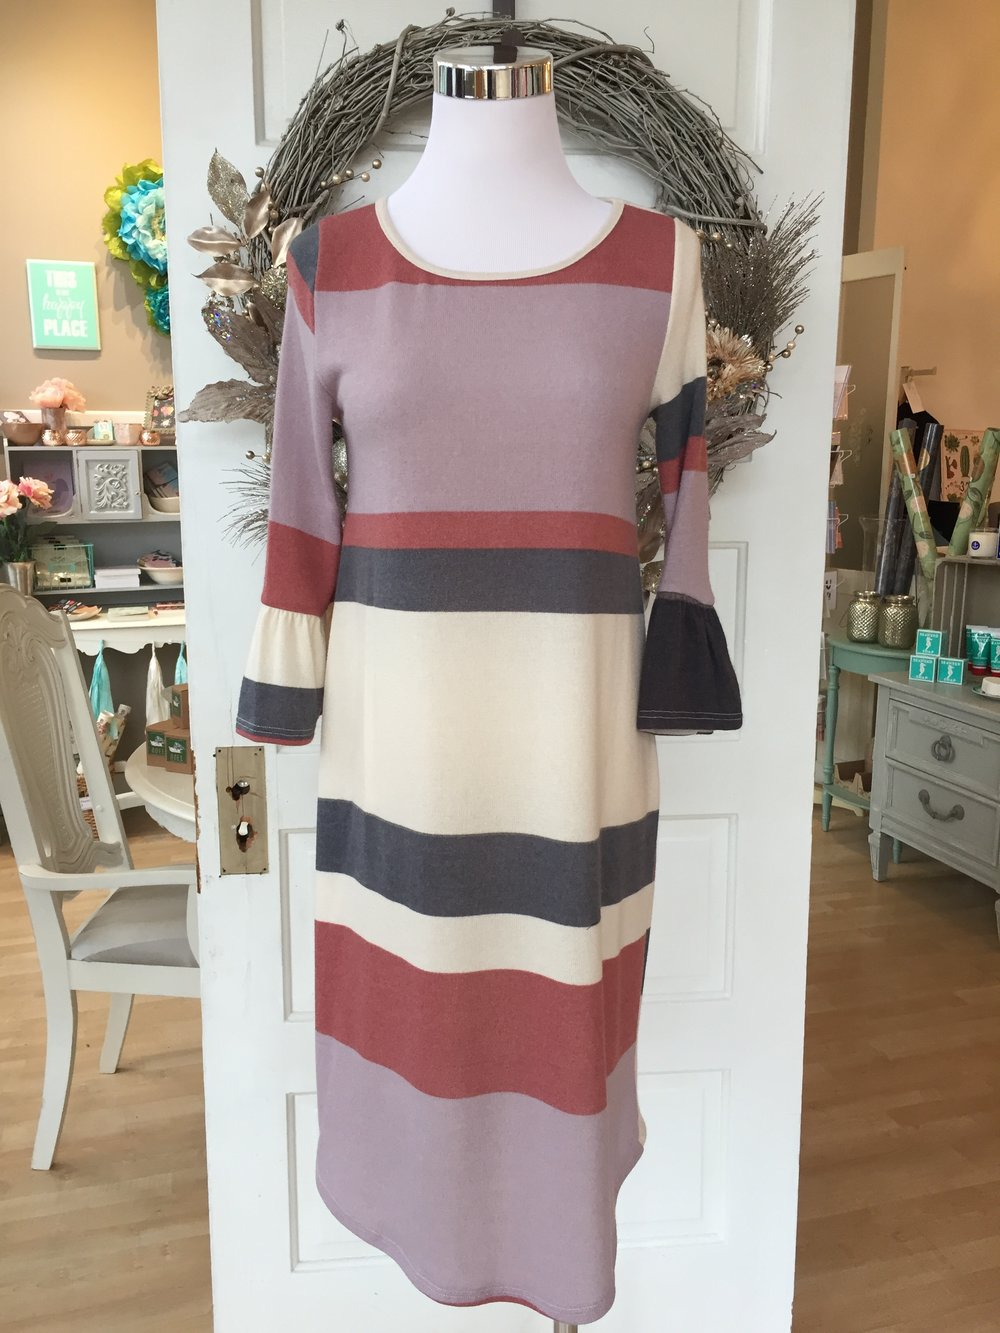 Les Amis Striped Dress $38